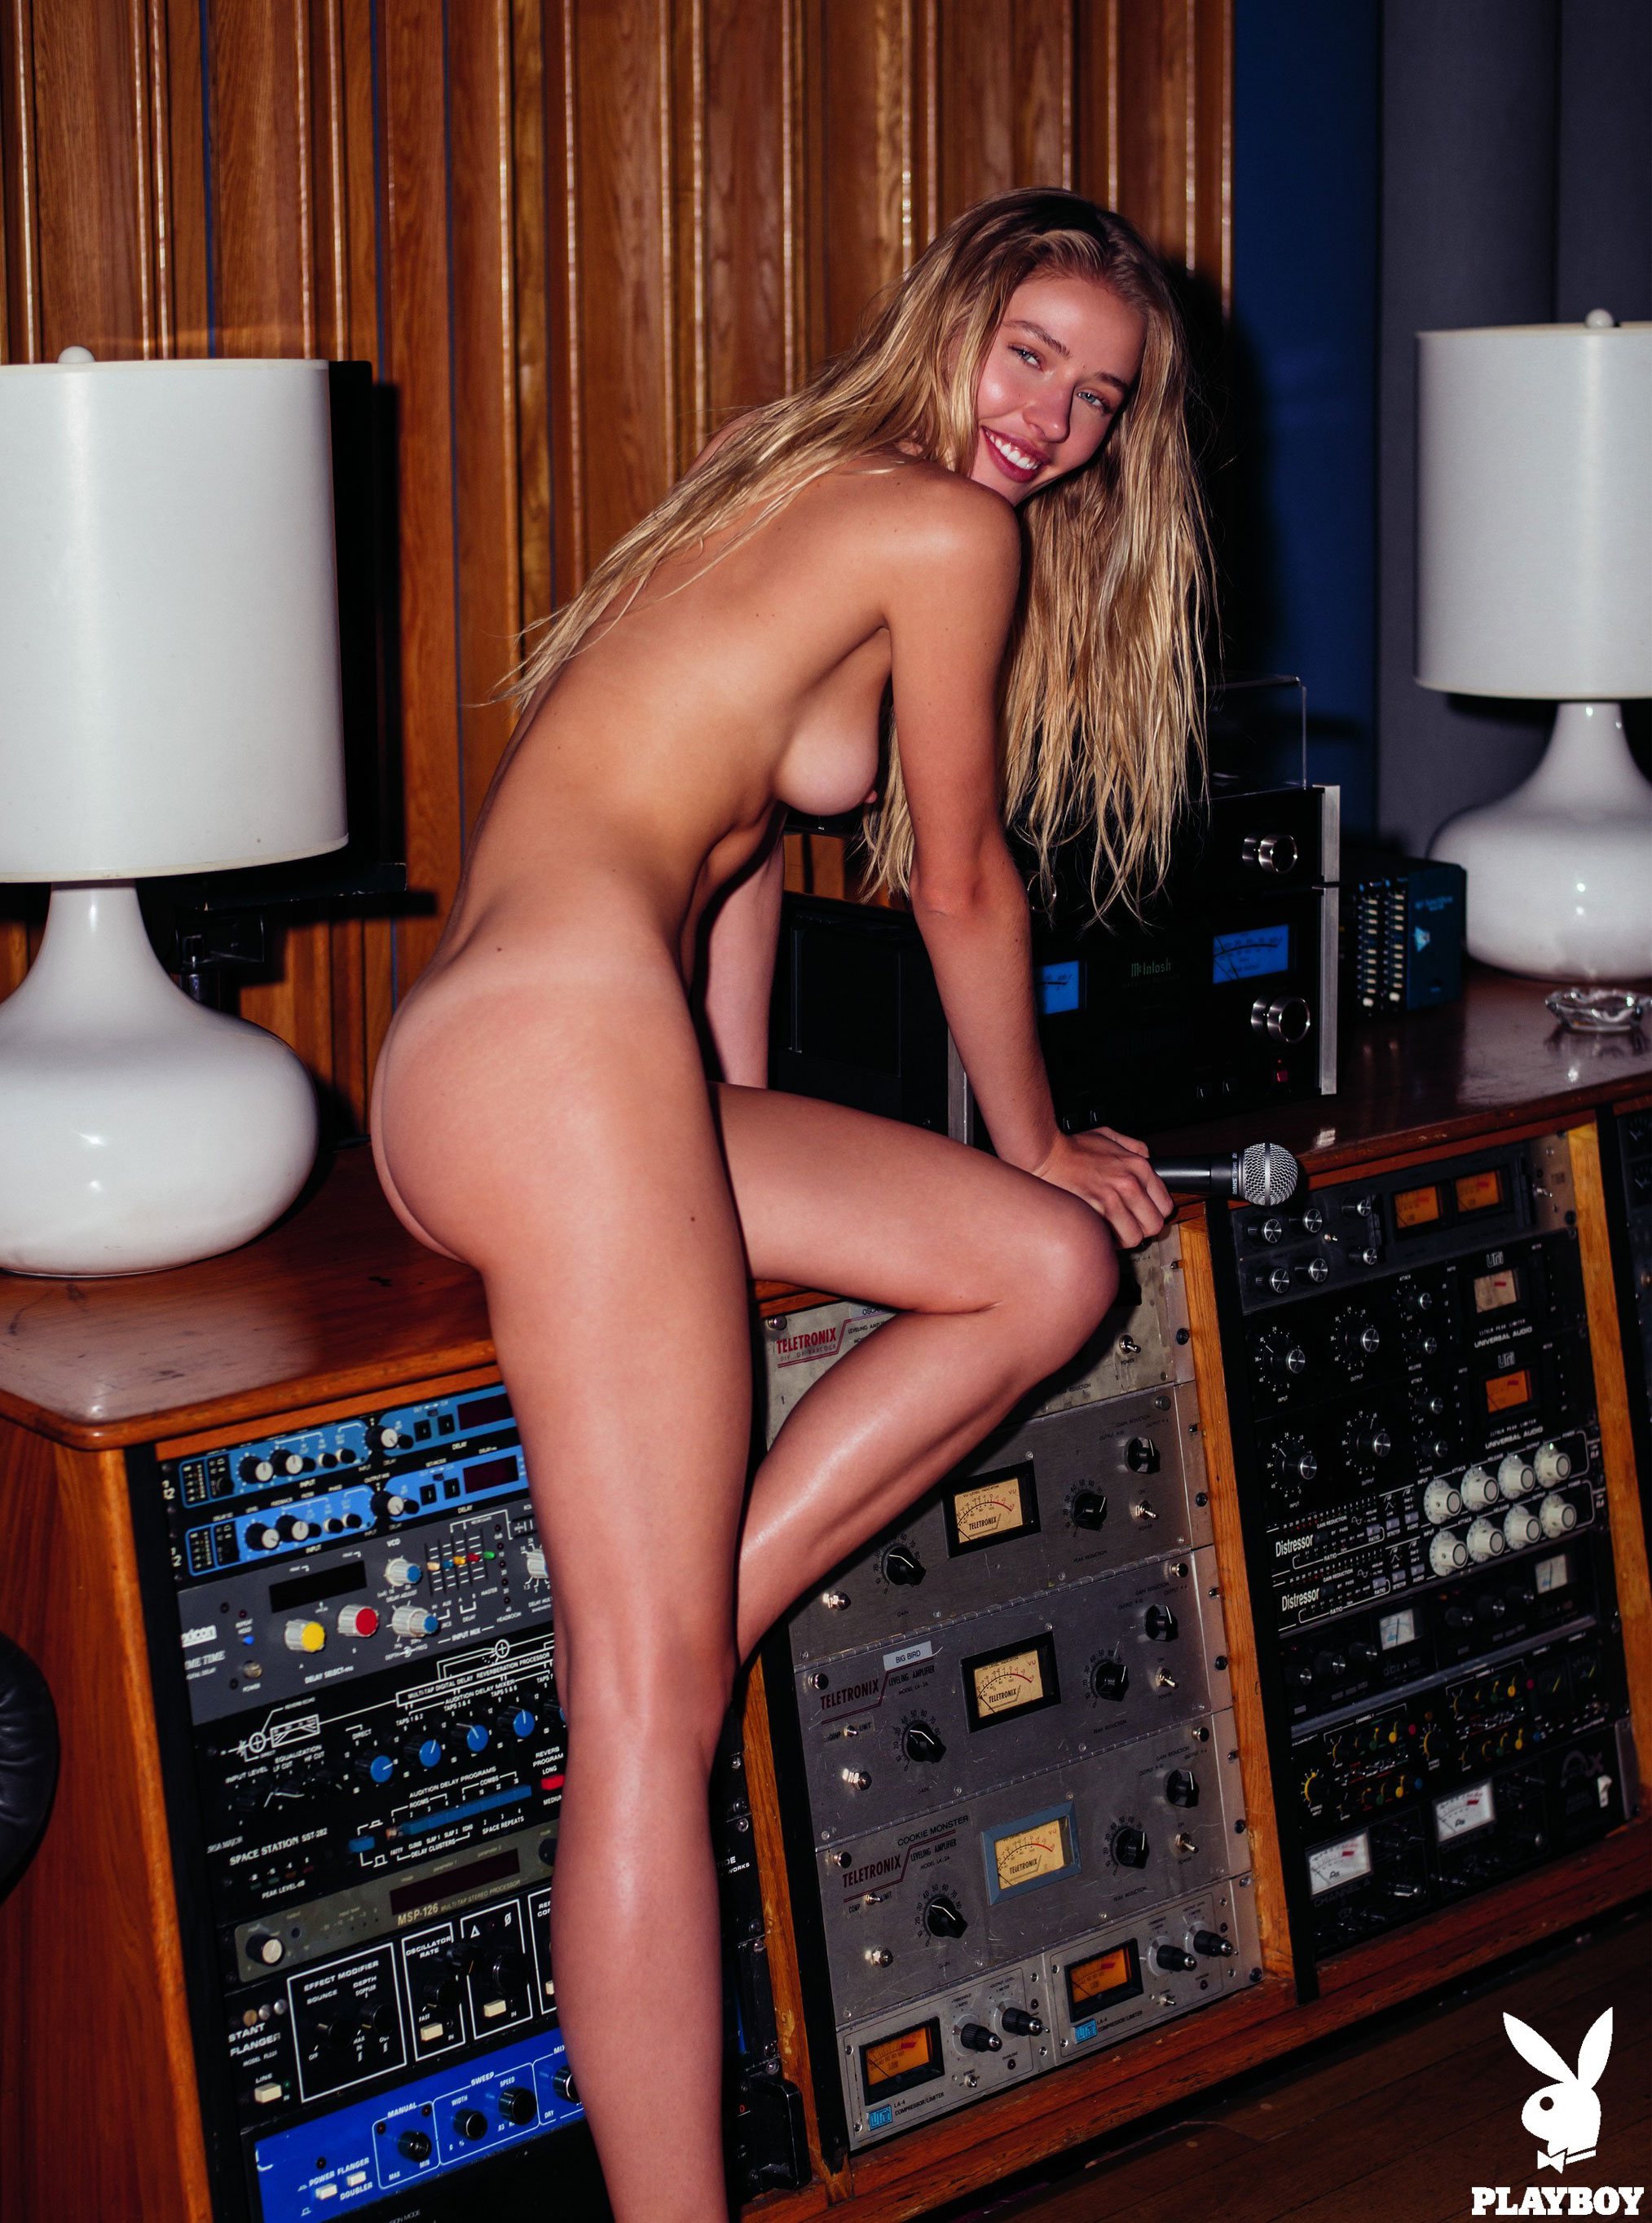 Daria Savishkina nude in Electric Lady Studios - Playboy US september/october 2017 / photo by Christopher von Steinbach